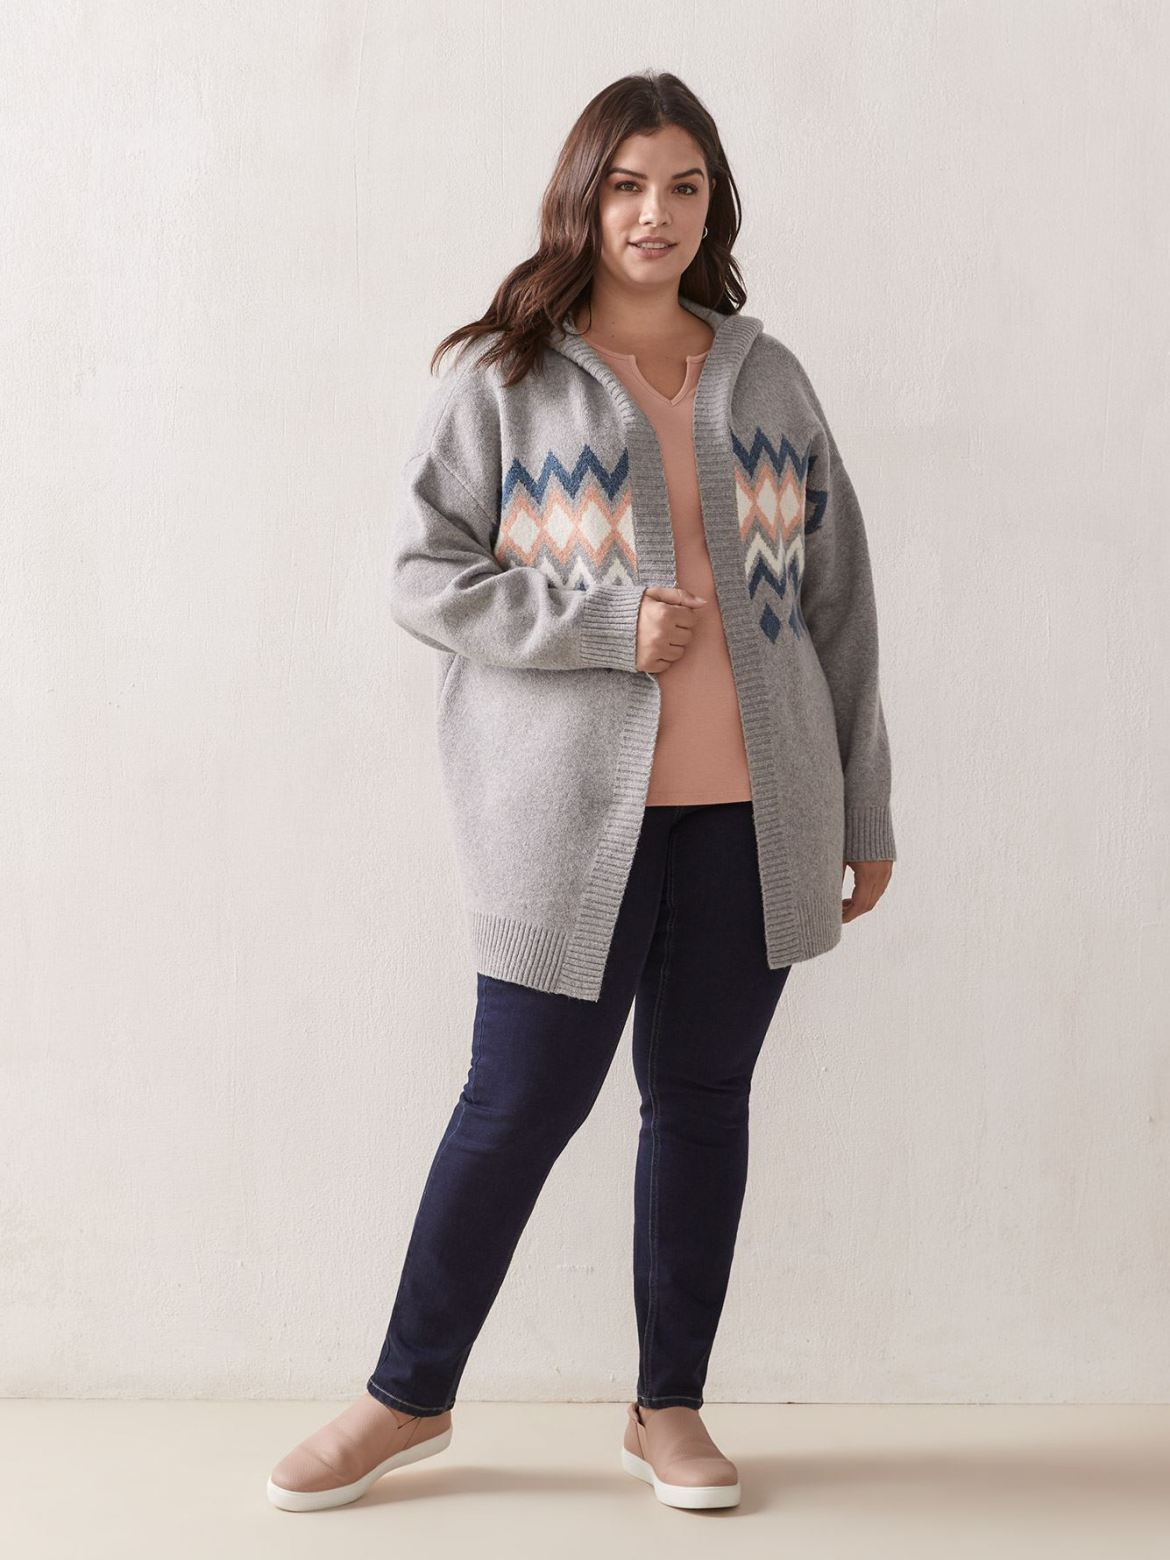 Long Tunic Cardigan With Hood – In Every Story